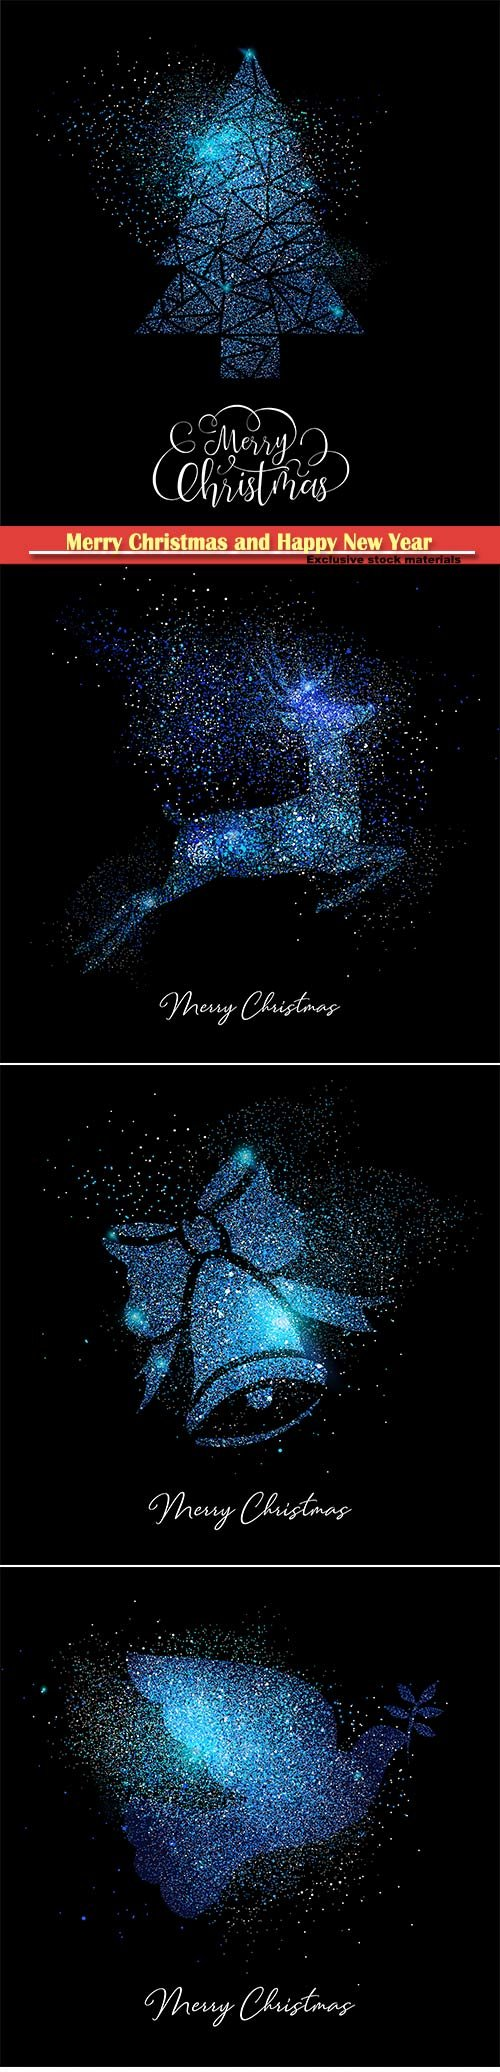 Merry Christmas blue glitter greeting vector card